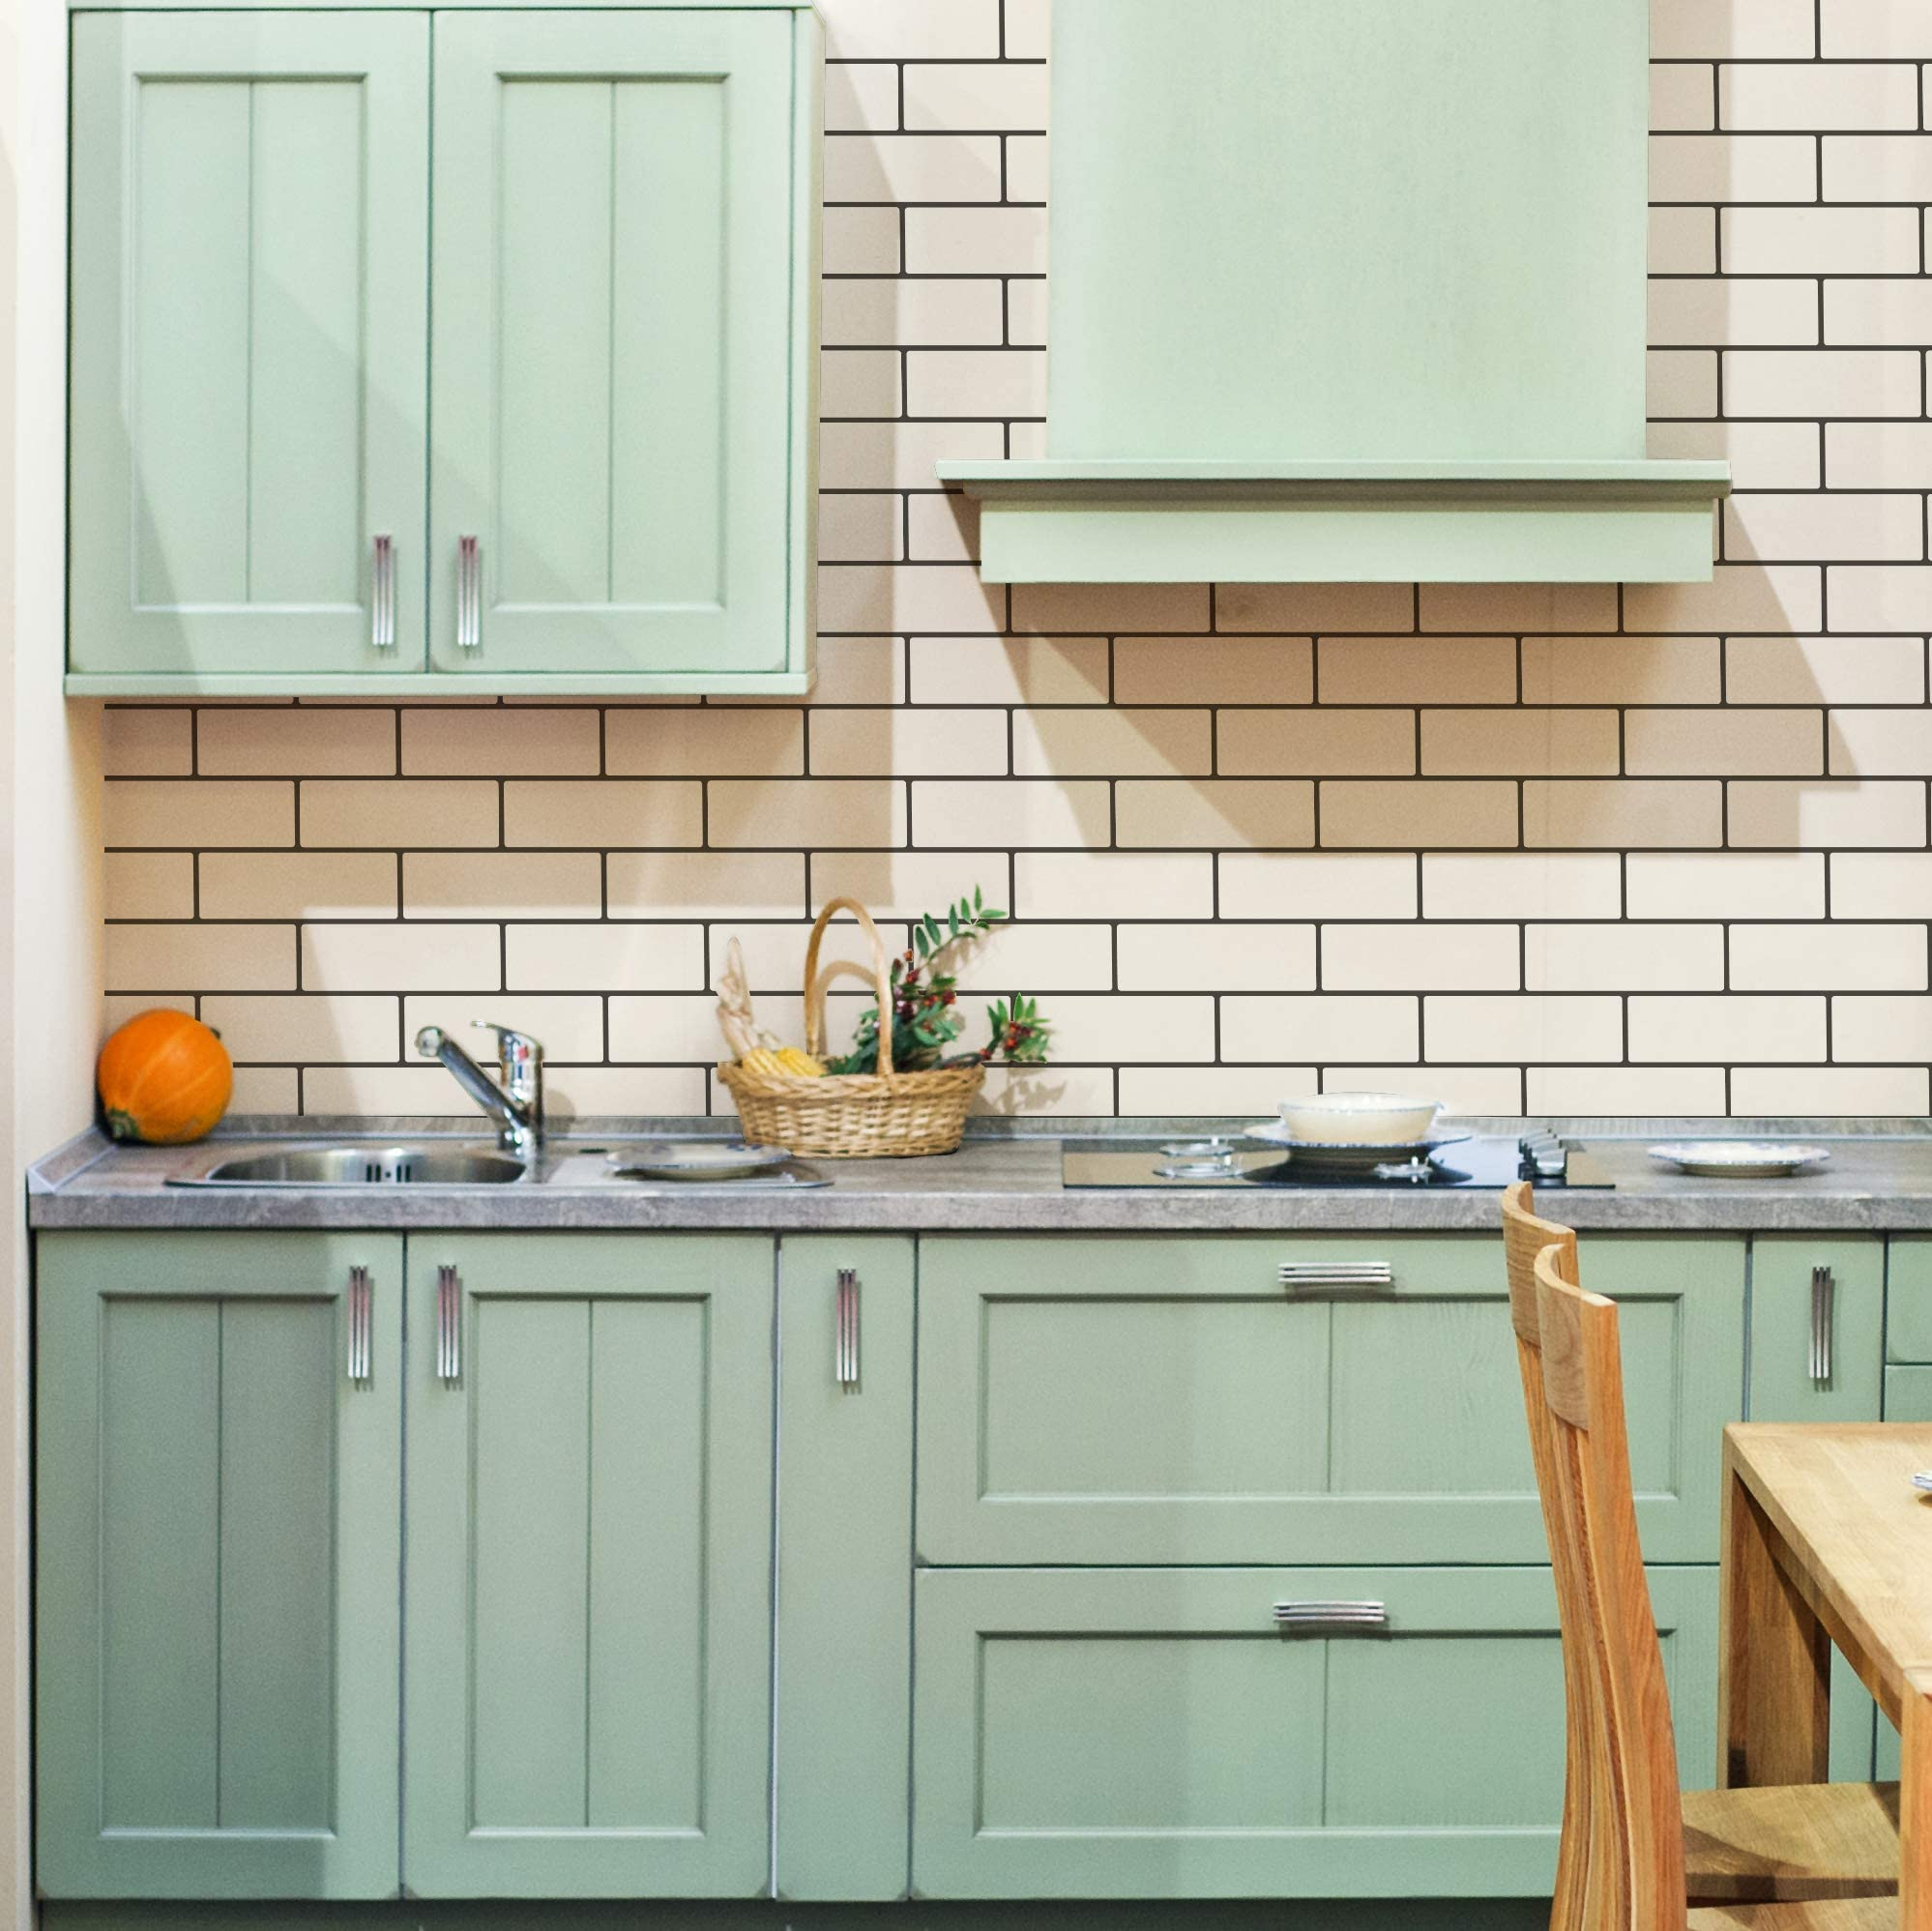 Subway Tiles Wall Pattern Stencil For Painting Tiled Kitchen Backspash Or Modern Brick Wall Design Arts Crafts Sewing